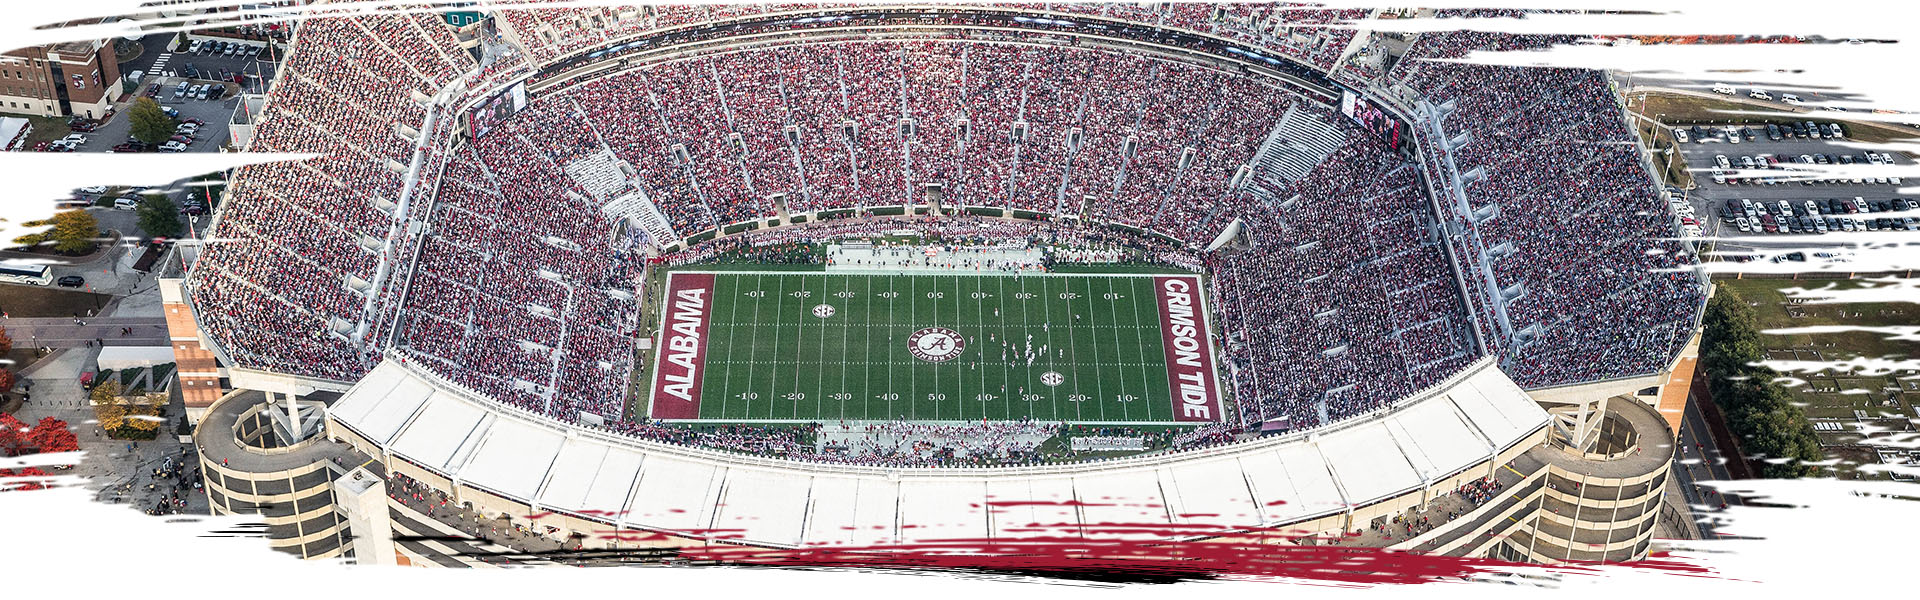 University Of Alabama Graduation 2020.Bryant Denny Stadium Tours University Of Alabama Athletics